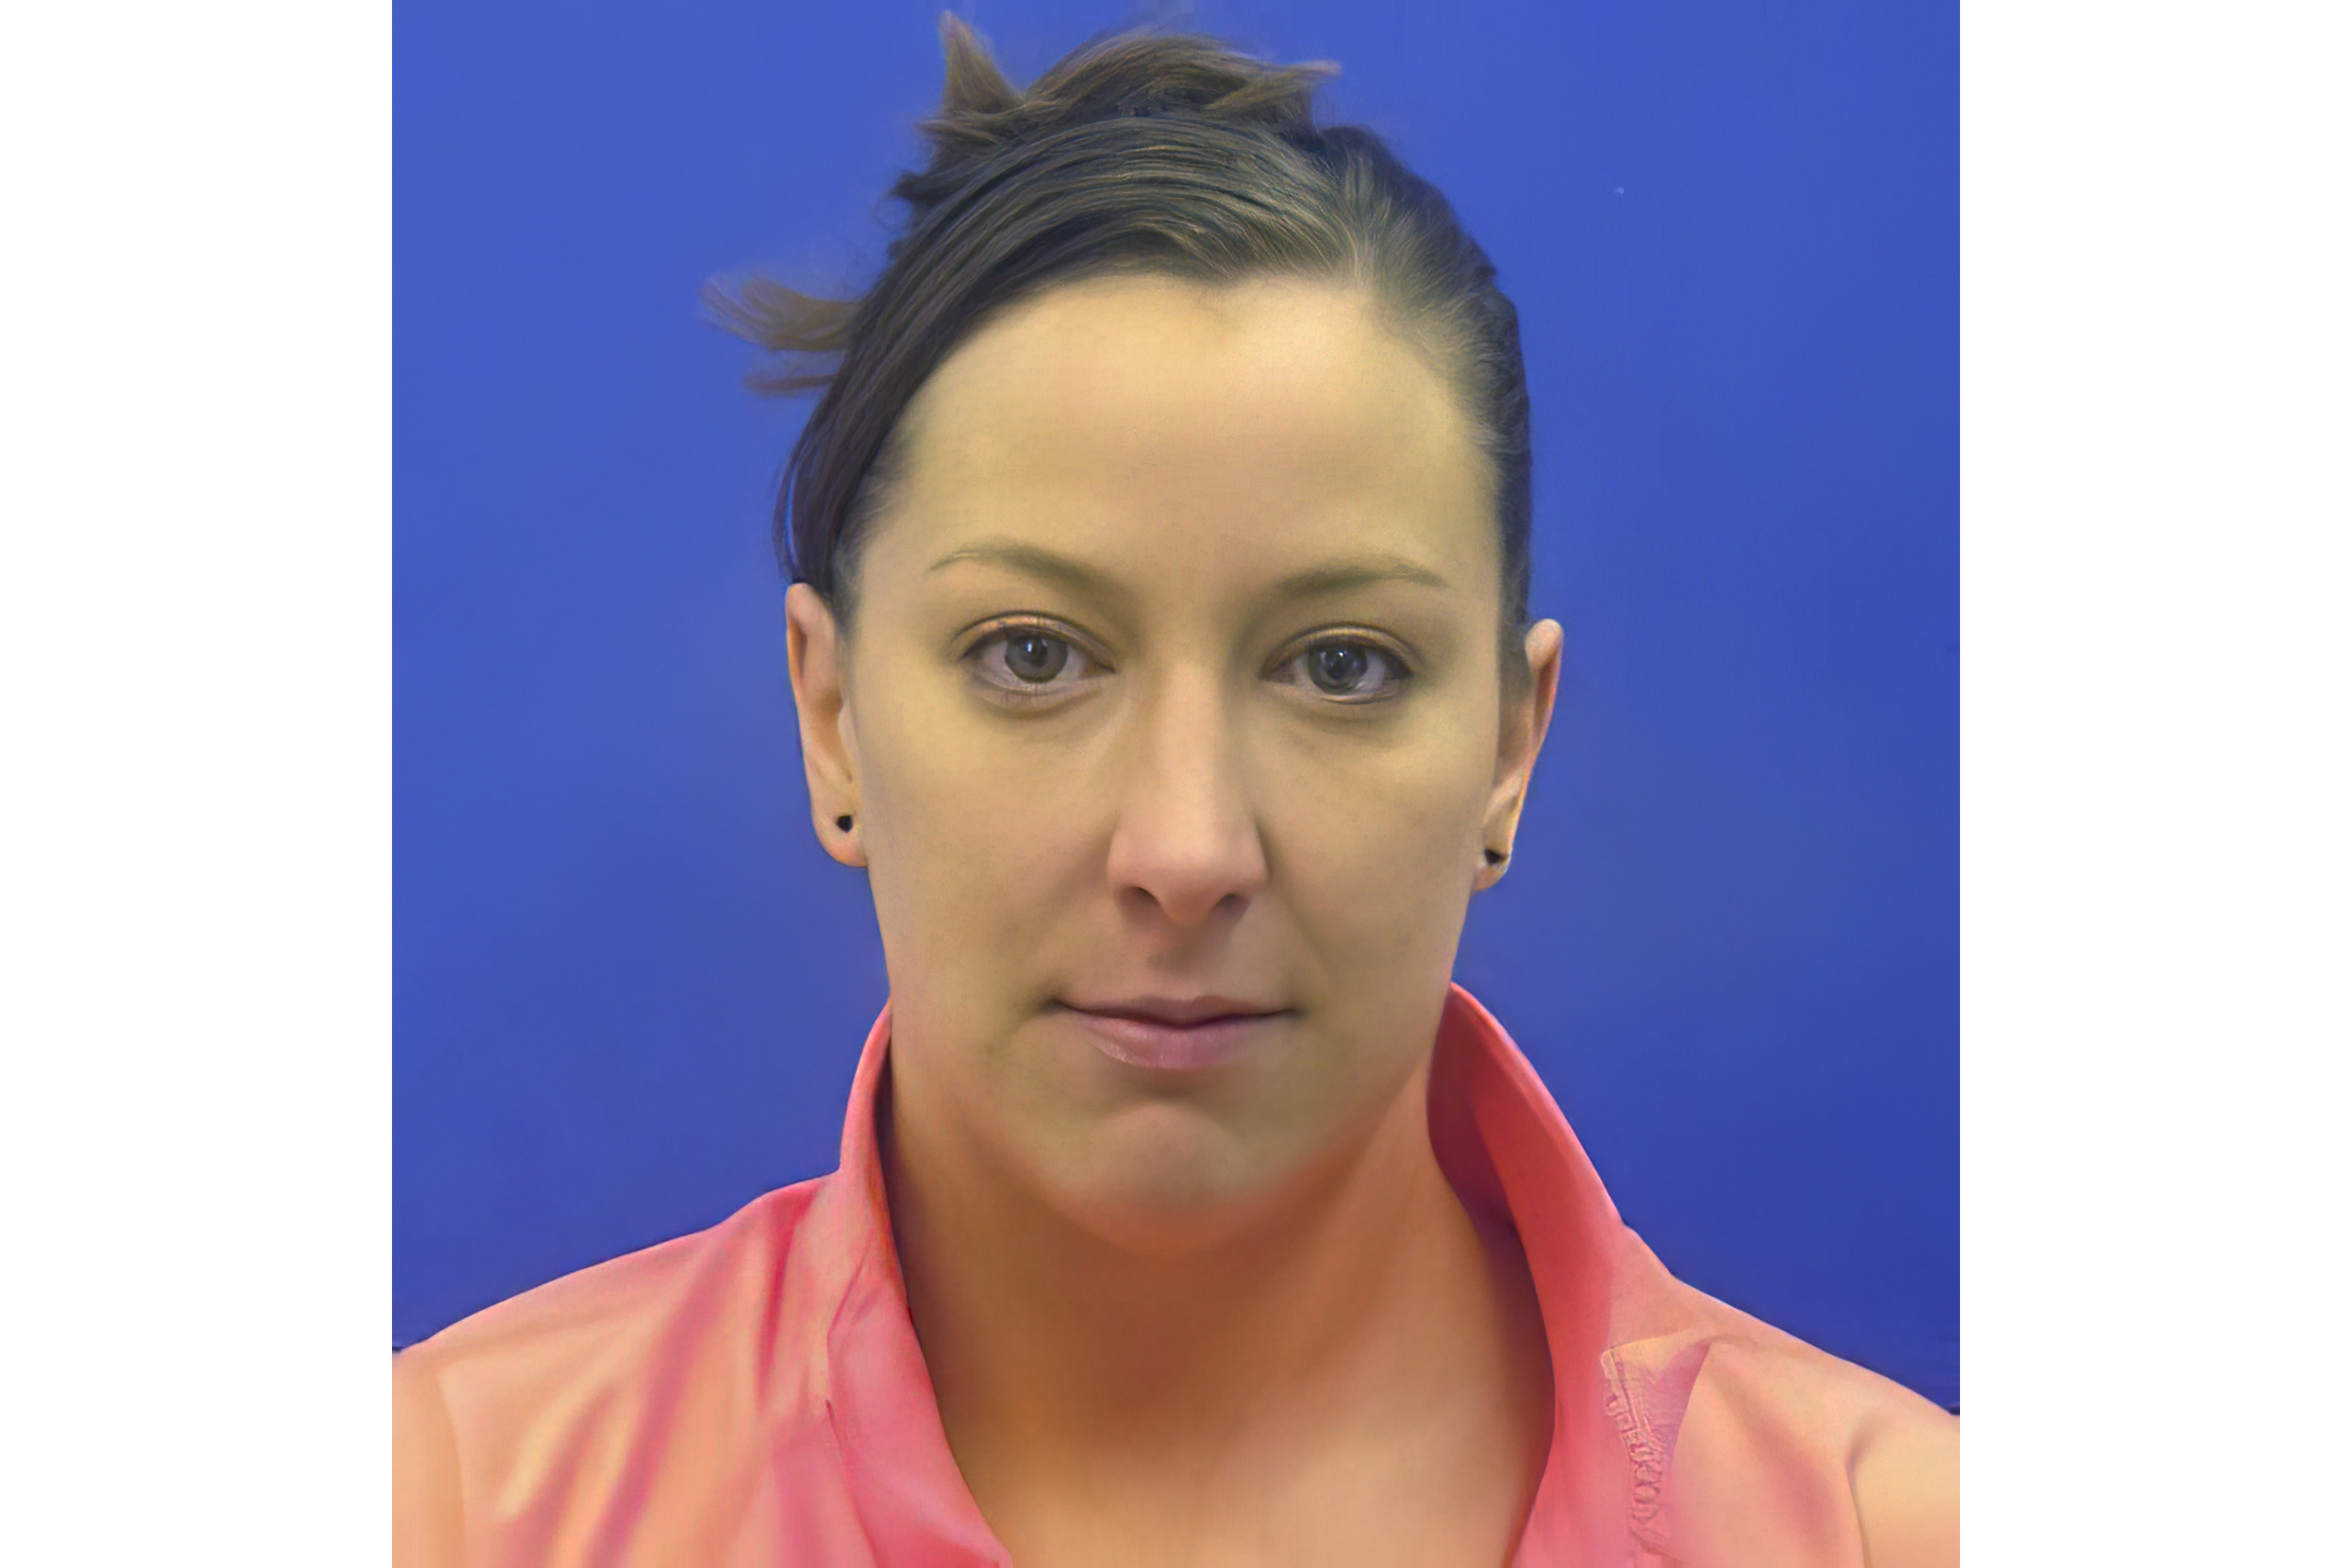 This driver's license photo from the Maryland Motor Vehicle Administration (MVA), provided to AP by the Calvert County Sheriff's Office, shows Ashli Babbitt.